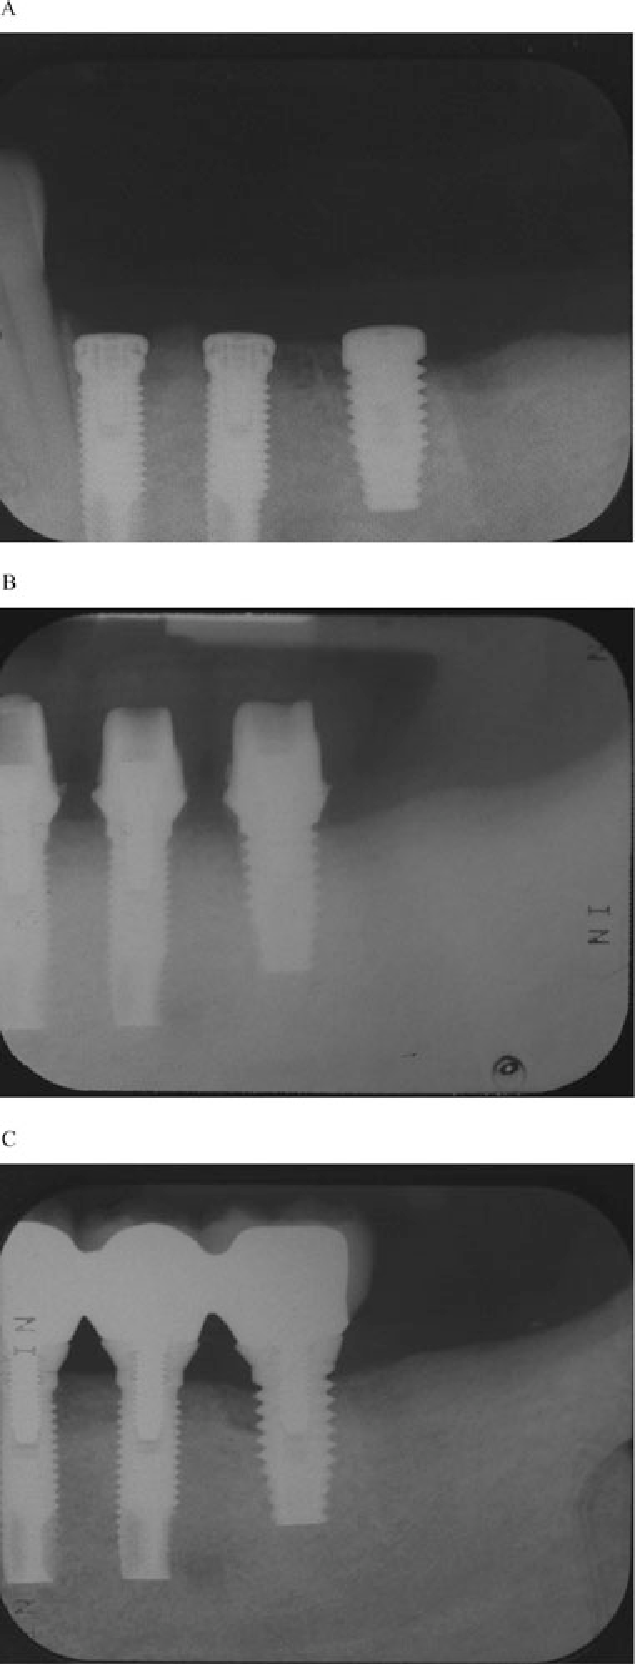 Figure 1 Radiographic aspect of ailing implants. (A) Postoperative radiograph at the time of implant placement. No peri-implant bone loss is present. (B) Postoperative radiograph at the time of abutment connection. No peri-implant bone loss is present. (C) Postoperative radiograph at 5 years. Peri-implant bone loss is extending beyond the third thread of the implant replacing tooth number 19.